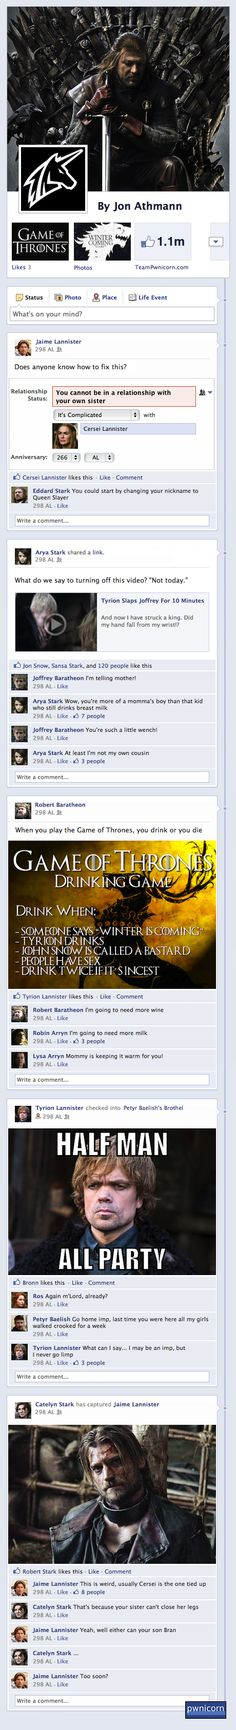 What if the characters from Game of Thrones were on Facebook?